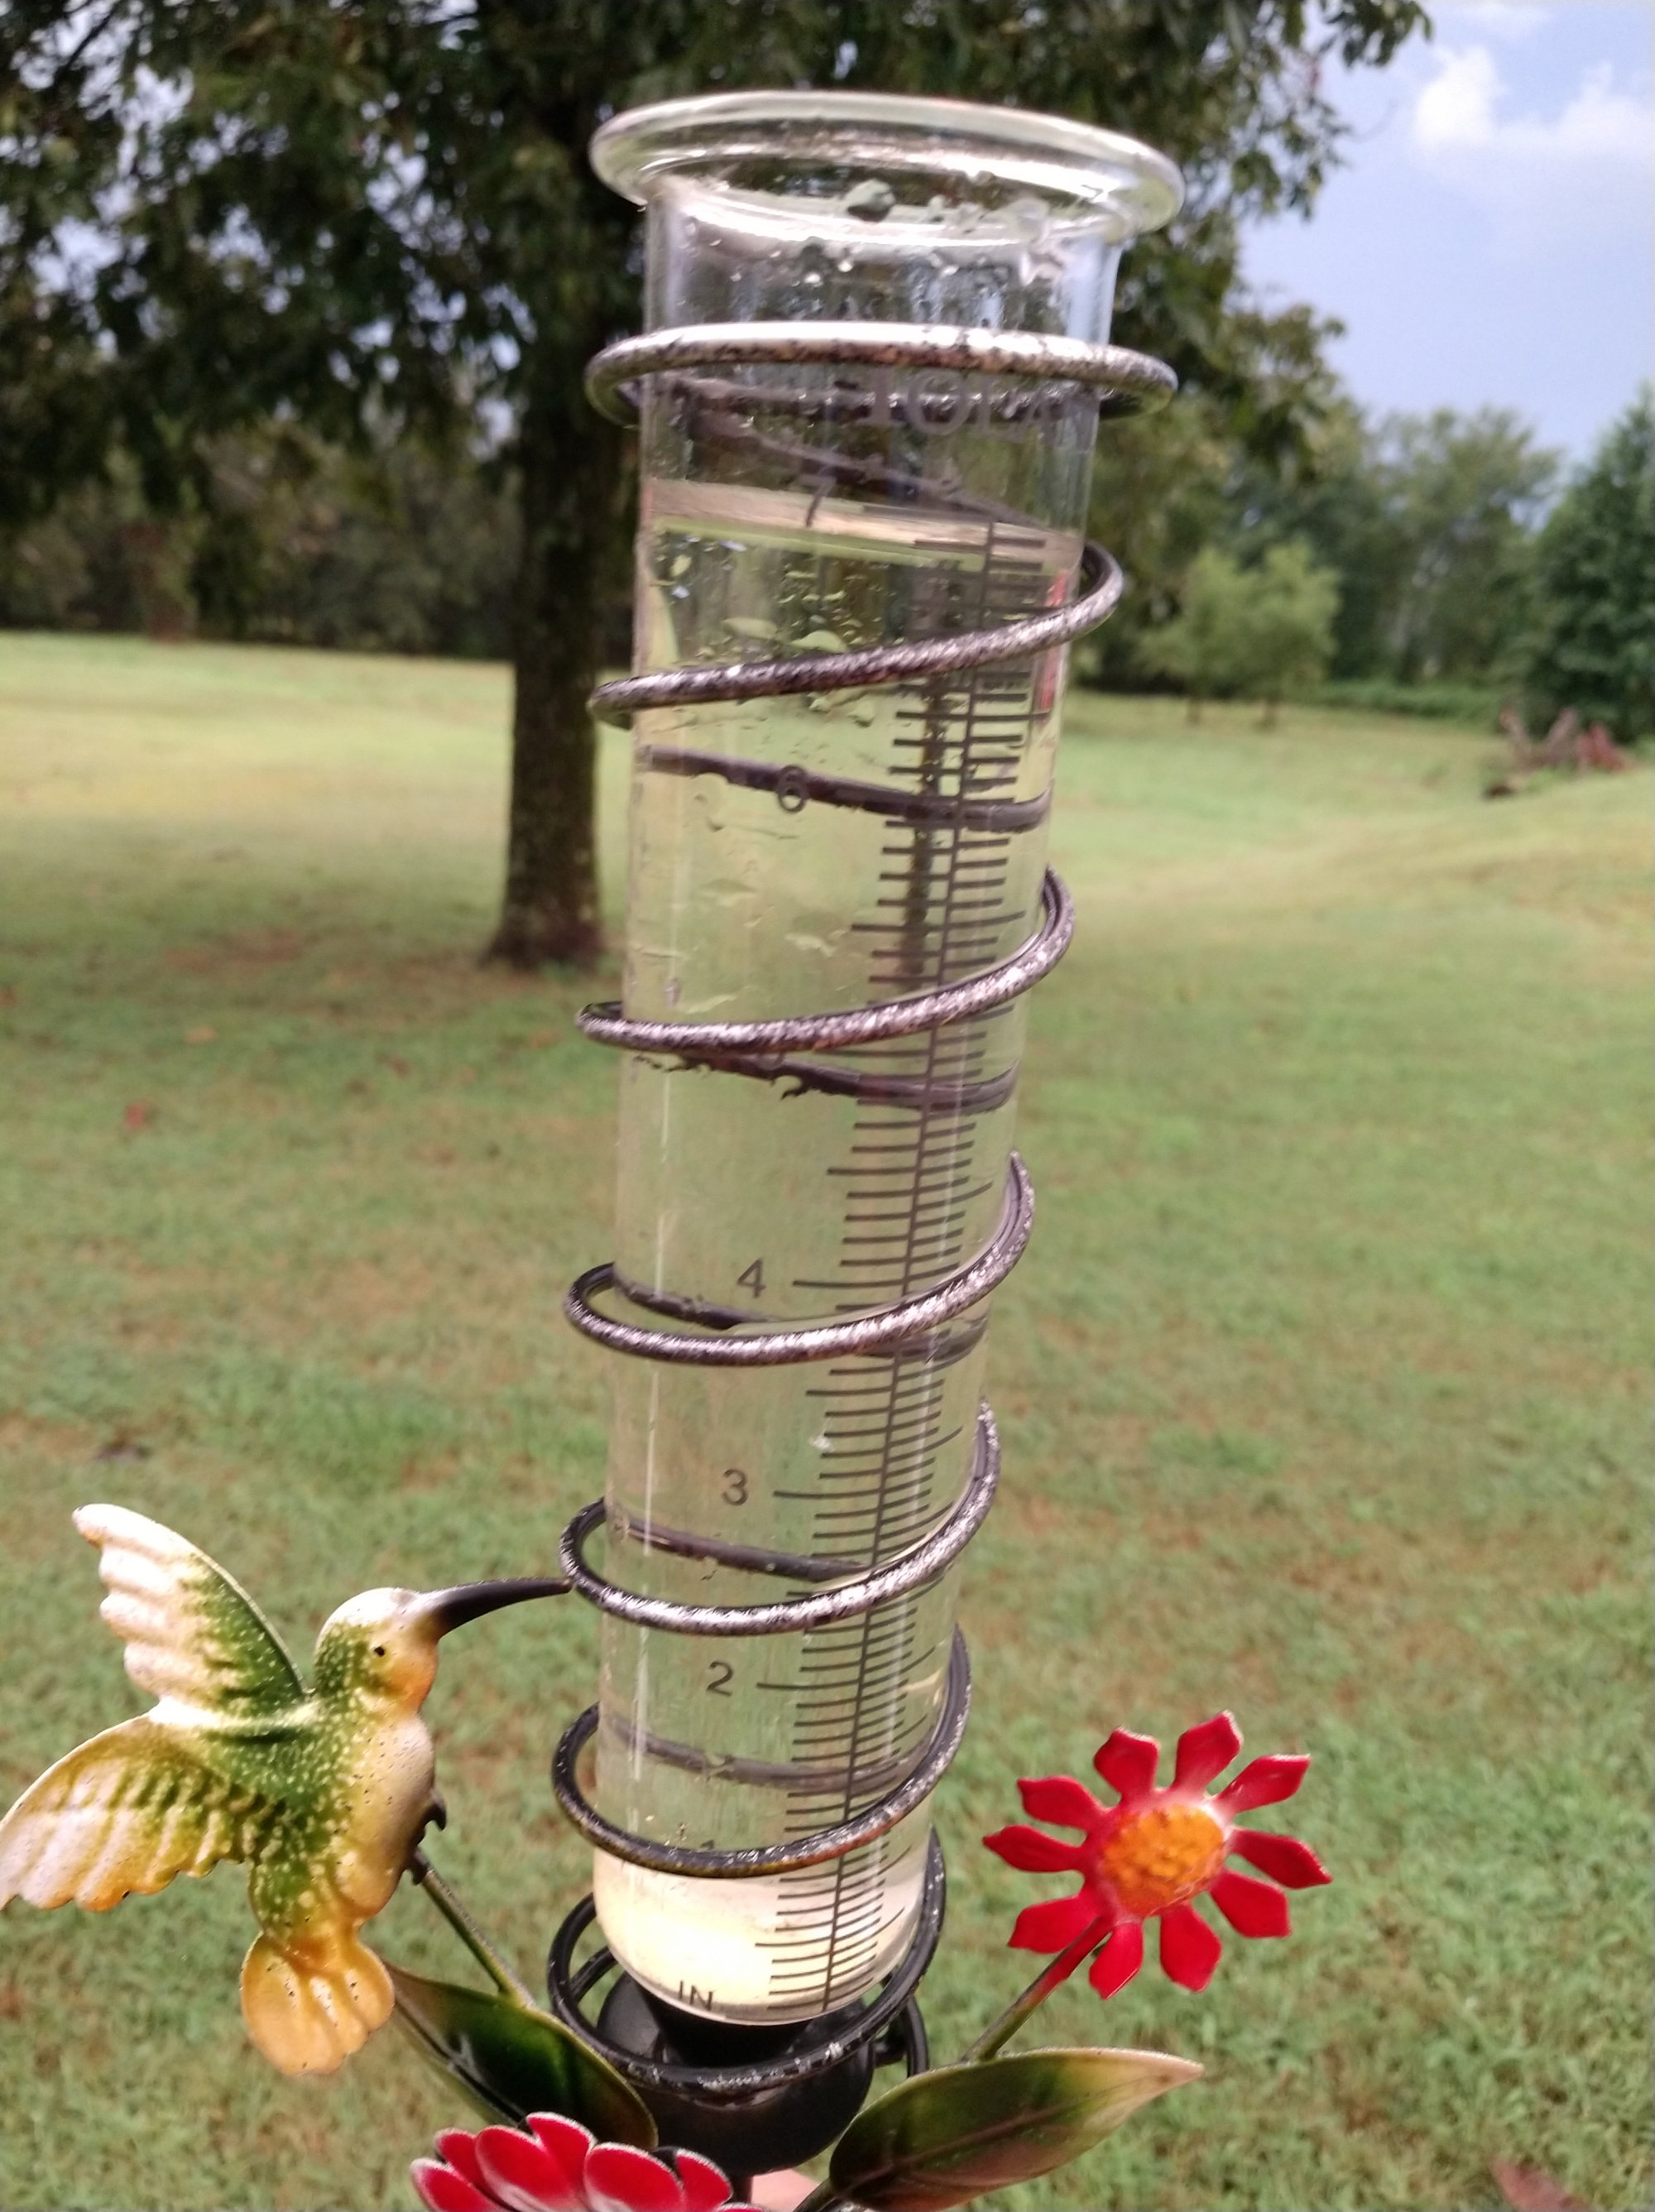 A rain gauge shows 7 inches of rain at a home on Alderson Road in Franklin County between Center Point and Lone Elm. (Courtesy of Eddie Alderson)